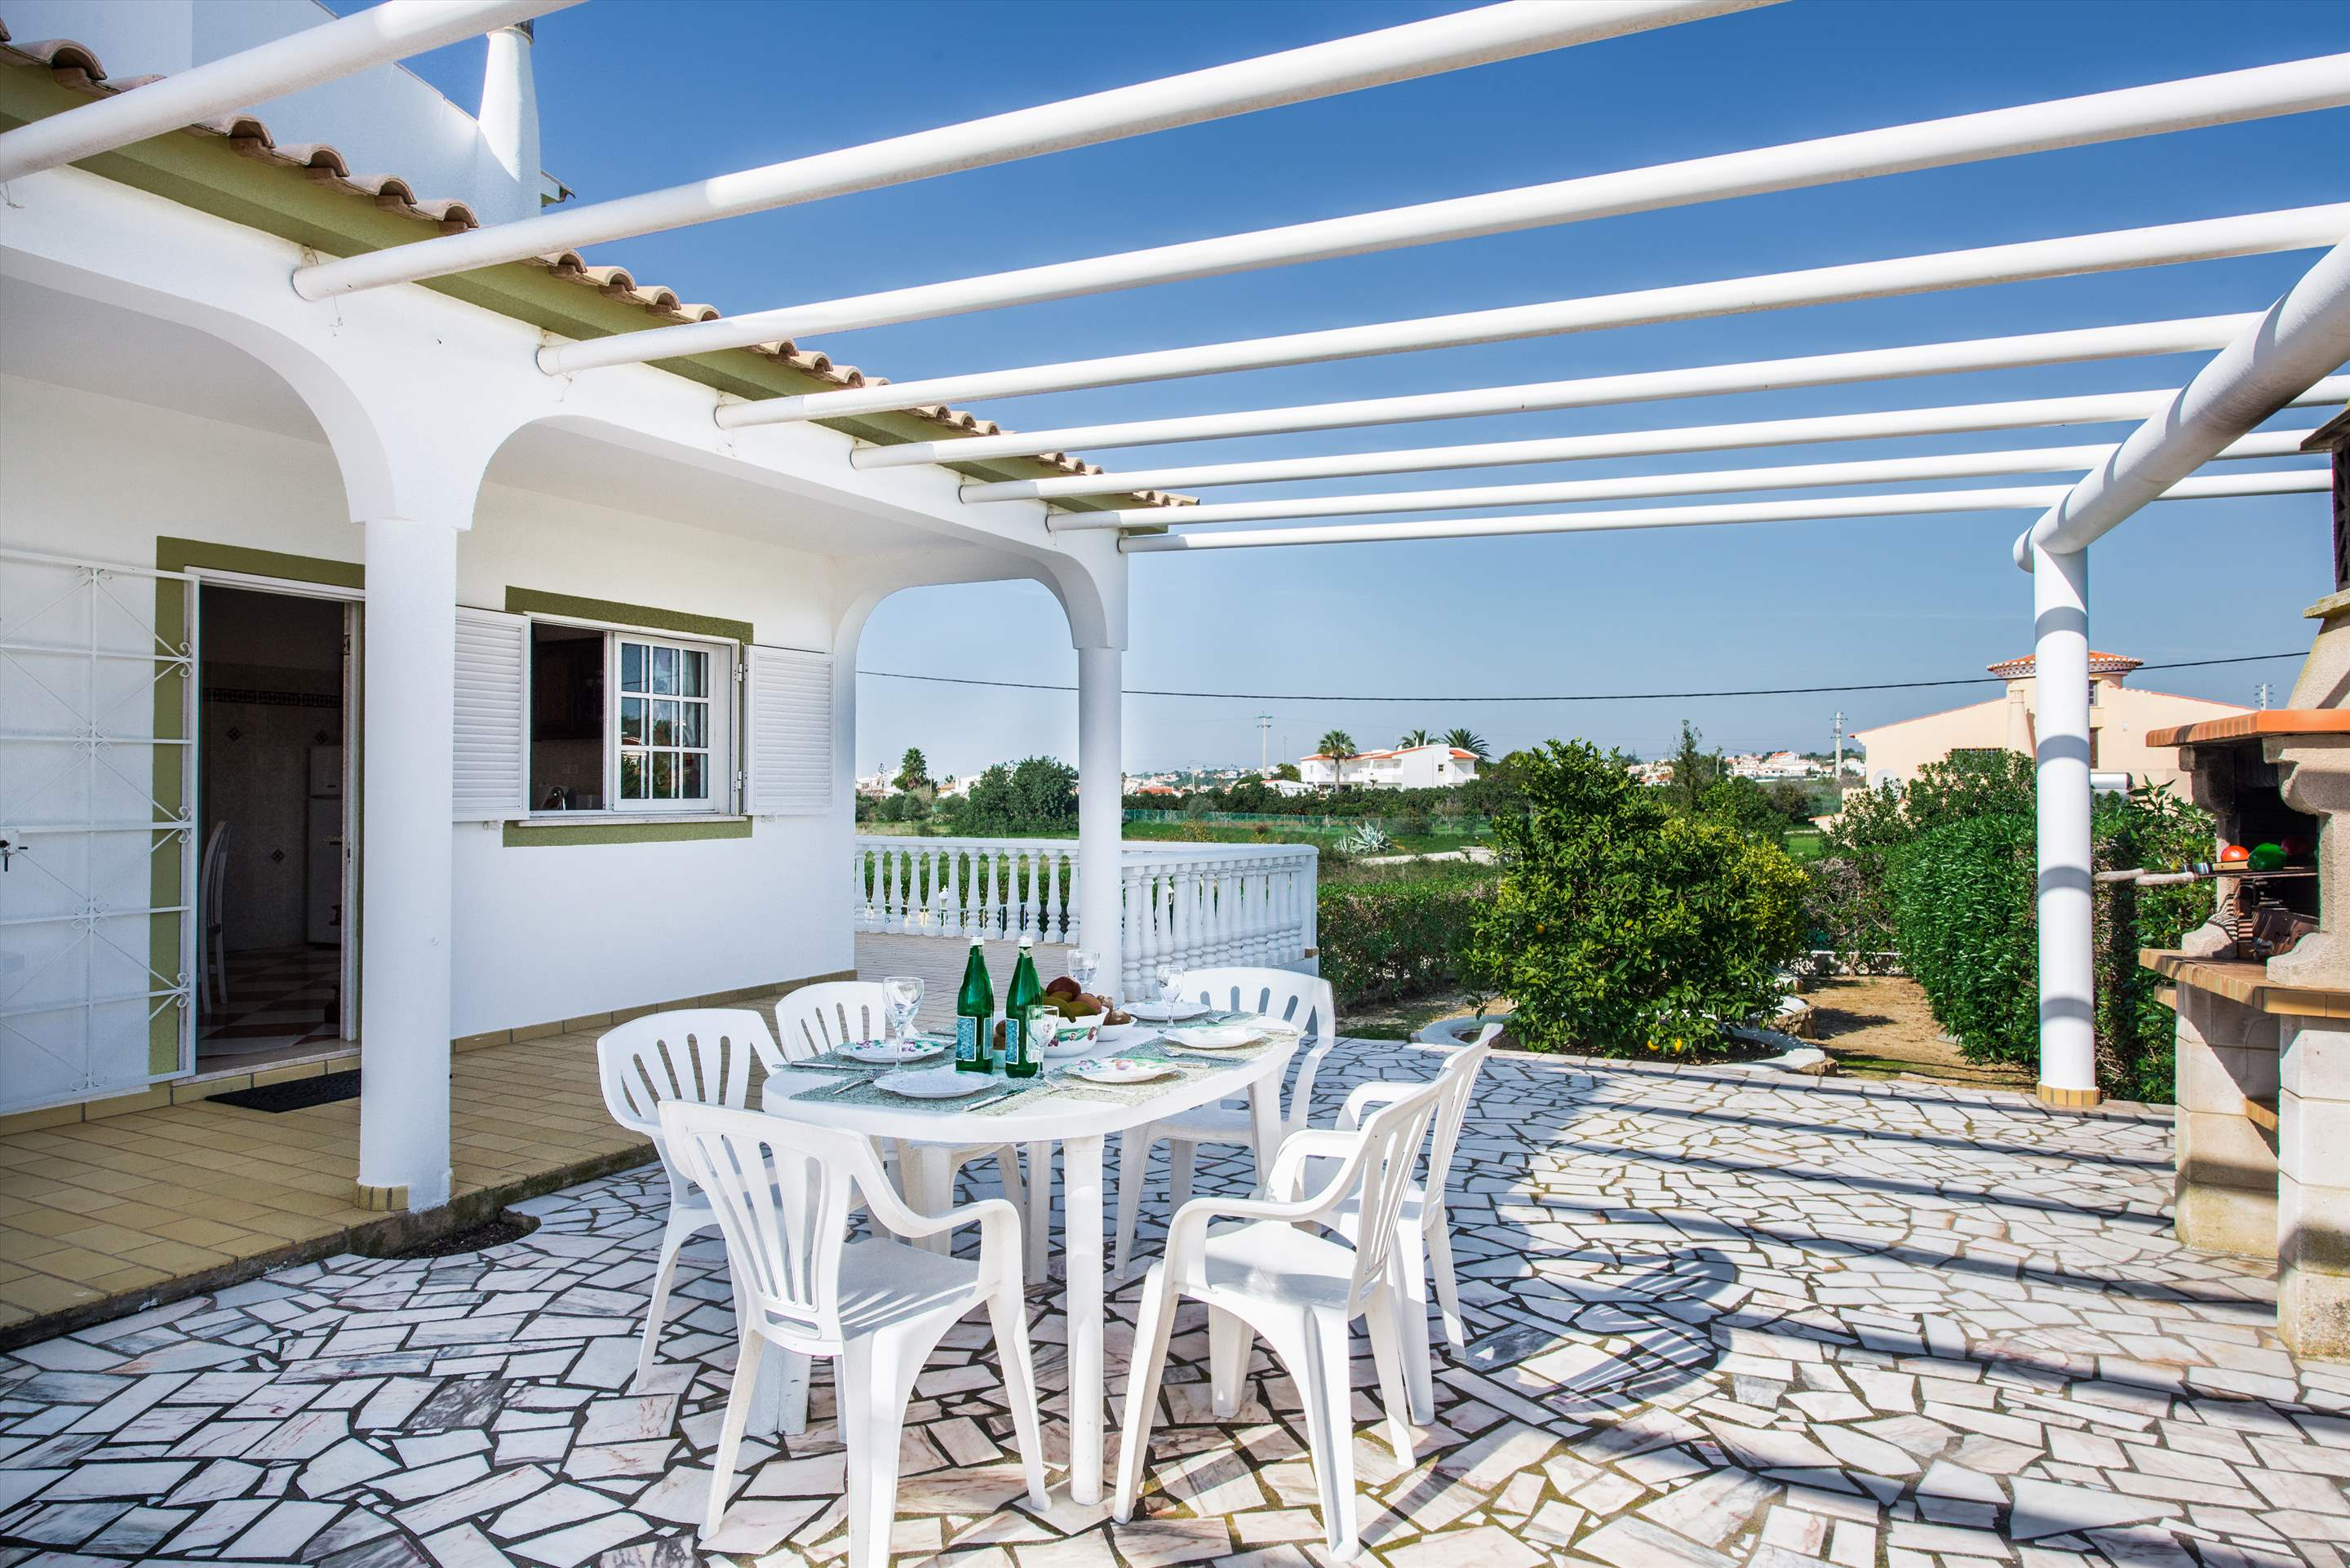 Villa Marco Real, 7-8 persons rate, 4 bedroom villa in Gale, Vale da Parra and Guia, Algarve Photo #2